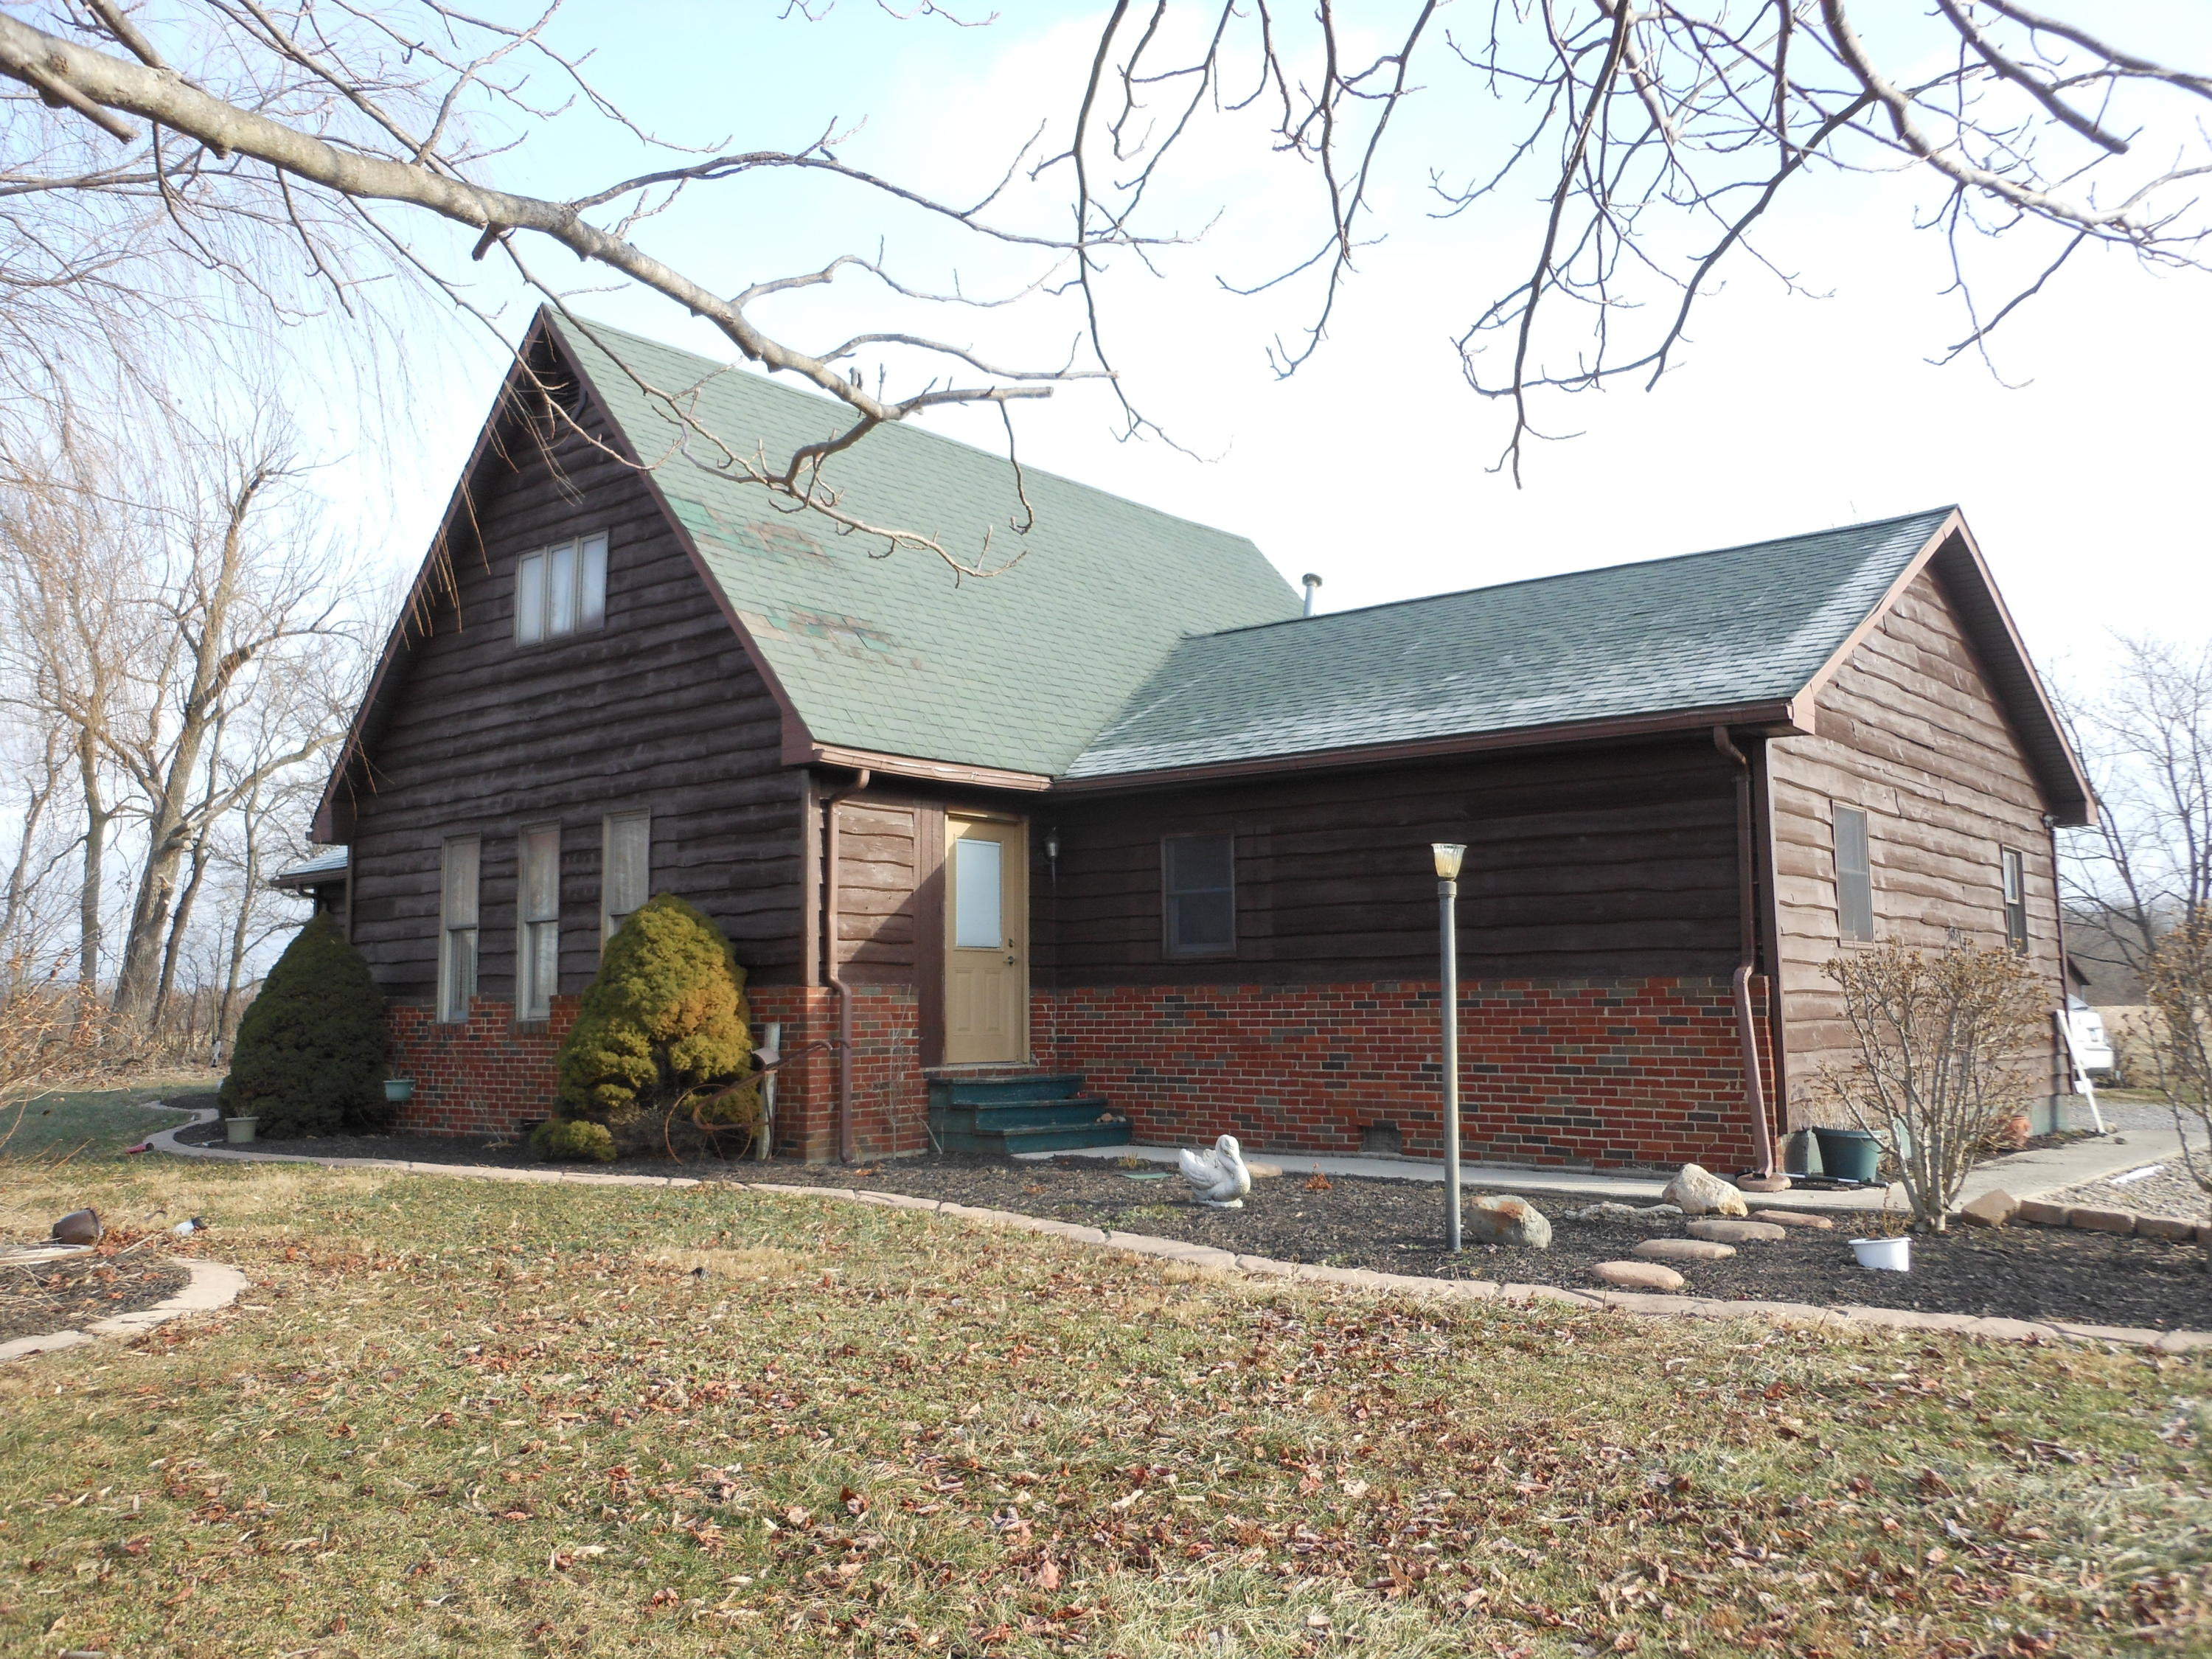 Photo 1 for 3737 Palestine Hollansburg Rd New Madison, OH 45346